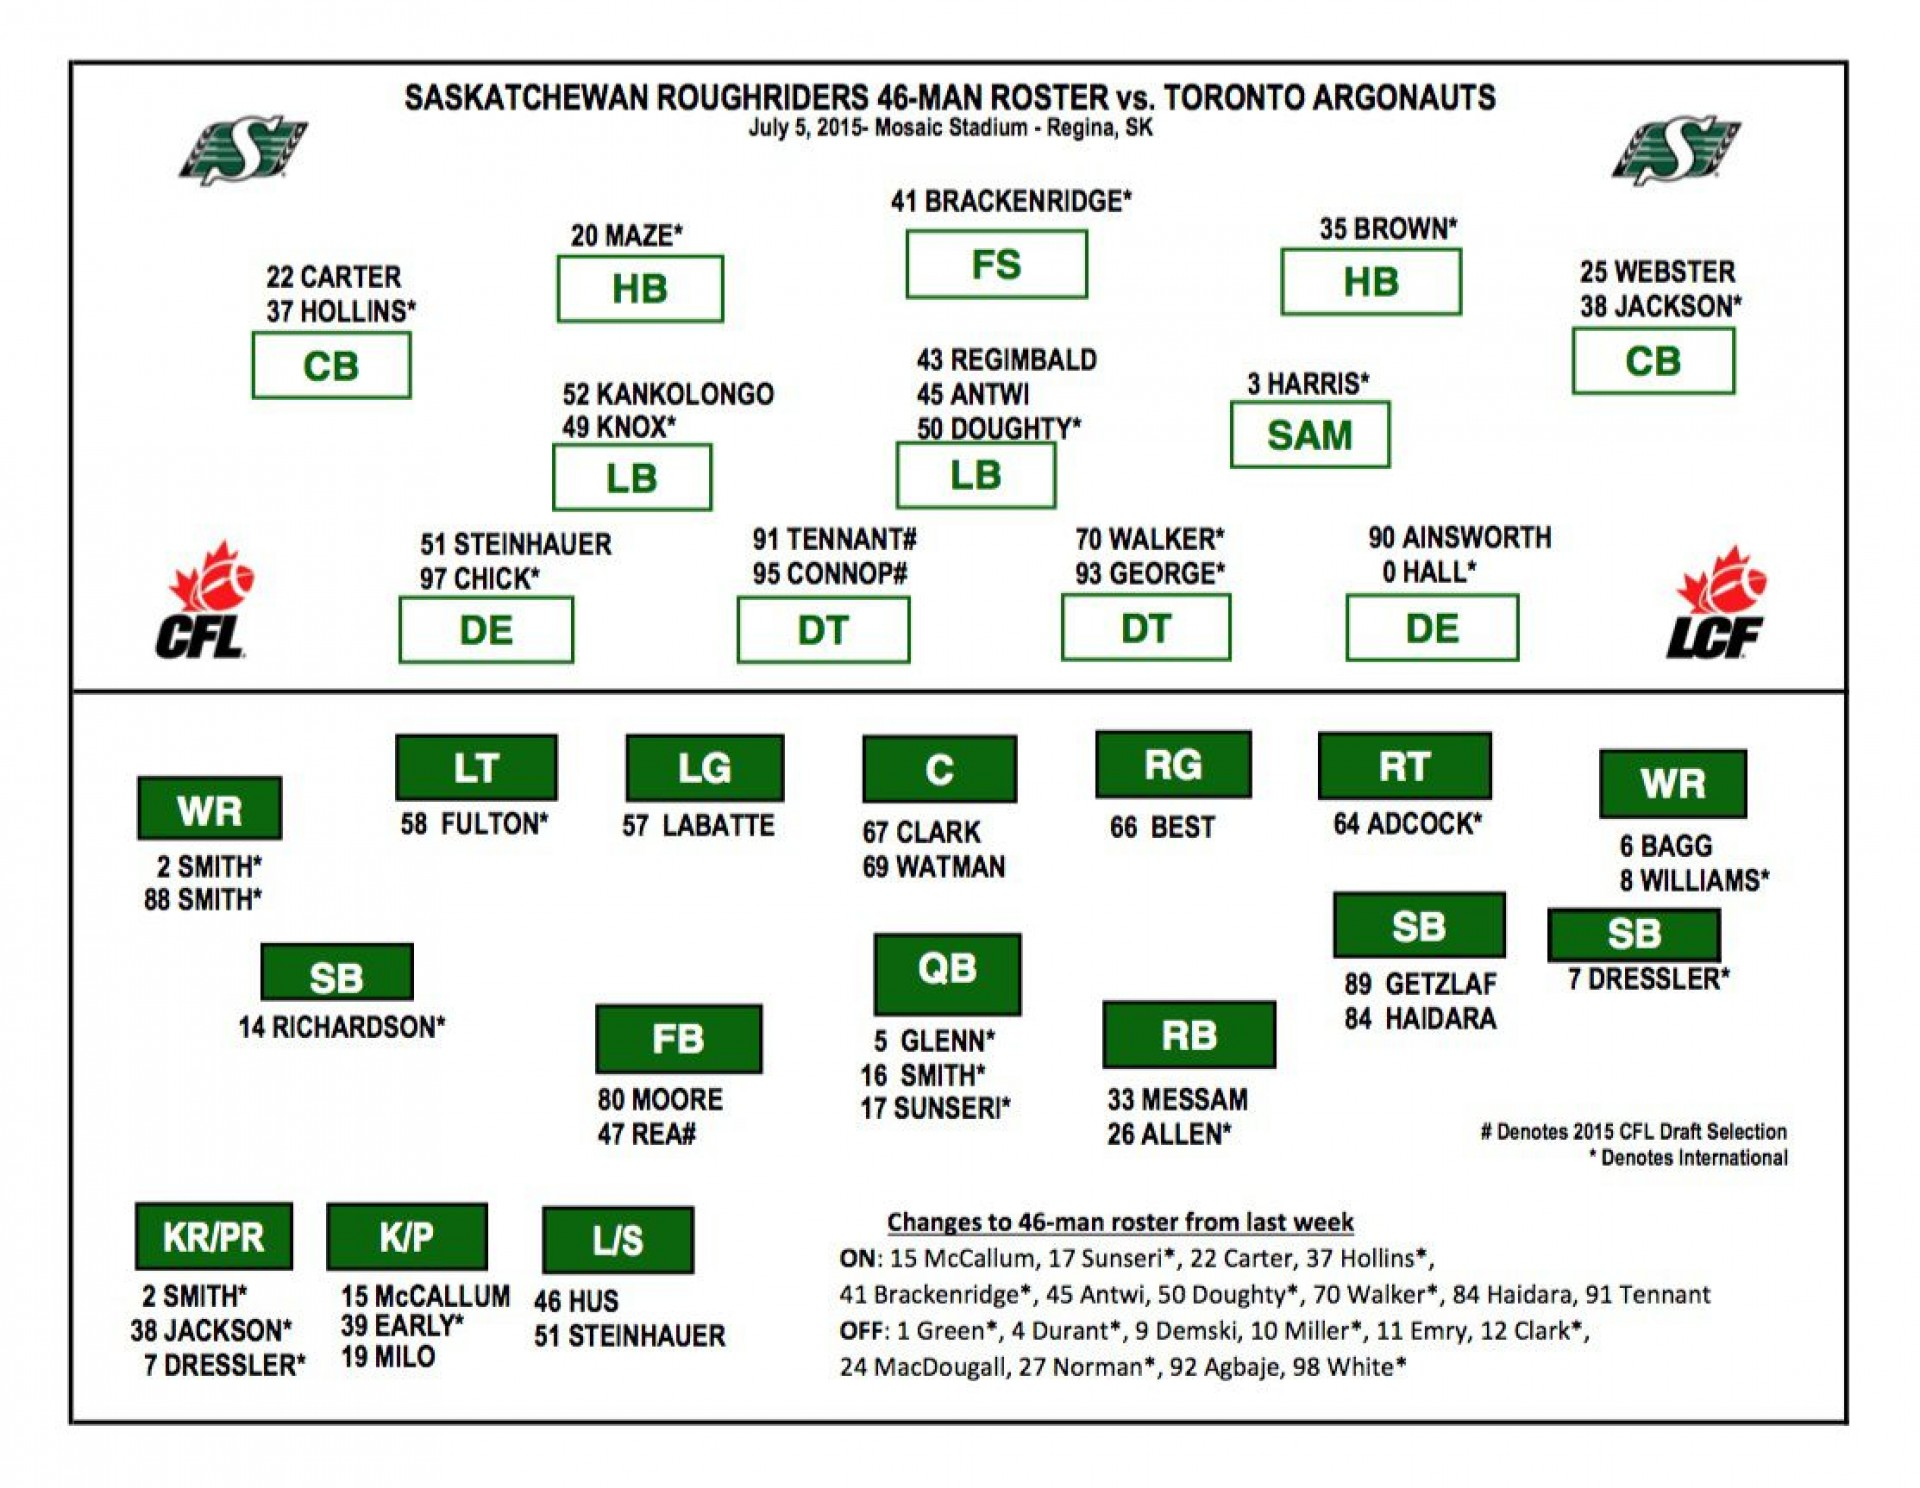 005 Remarkable Football Depth Chart Template High Resolution  American Excel Format Pdf Blank1920